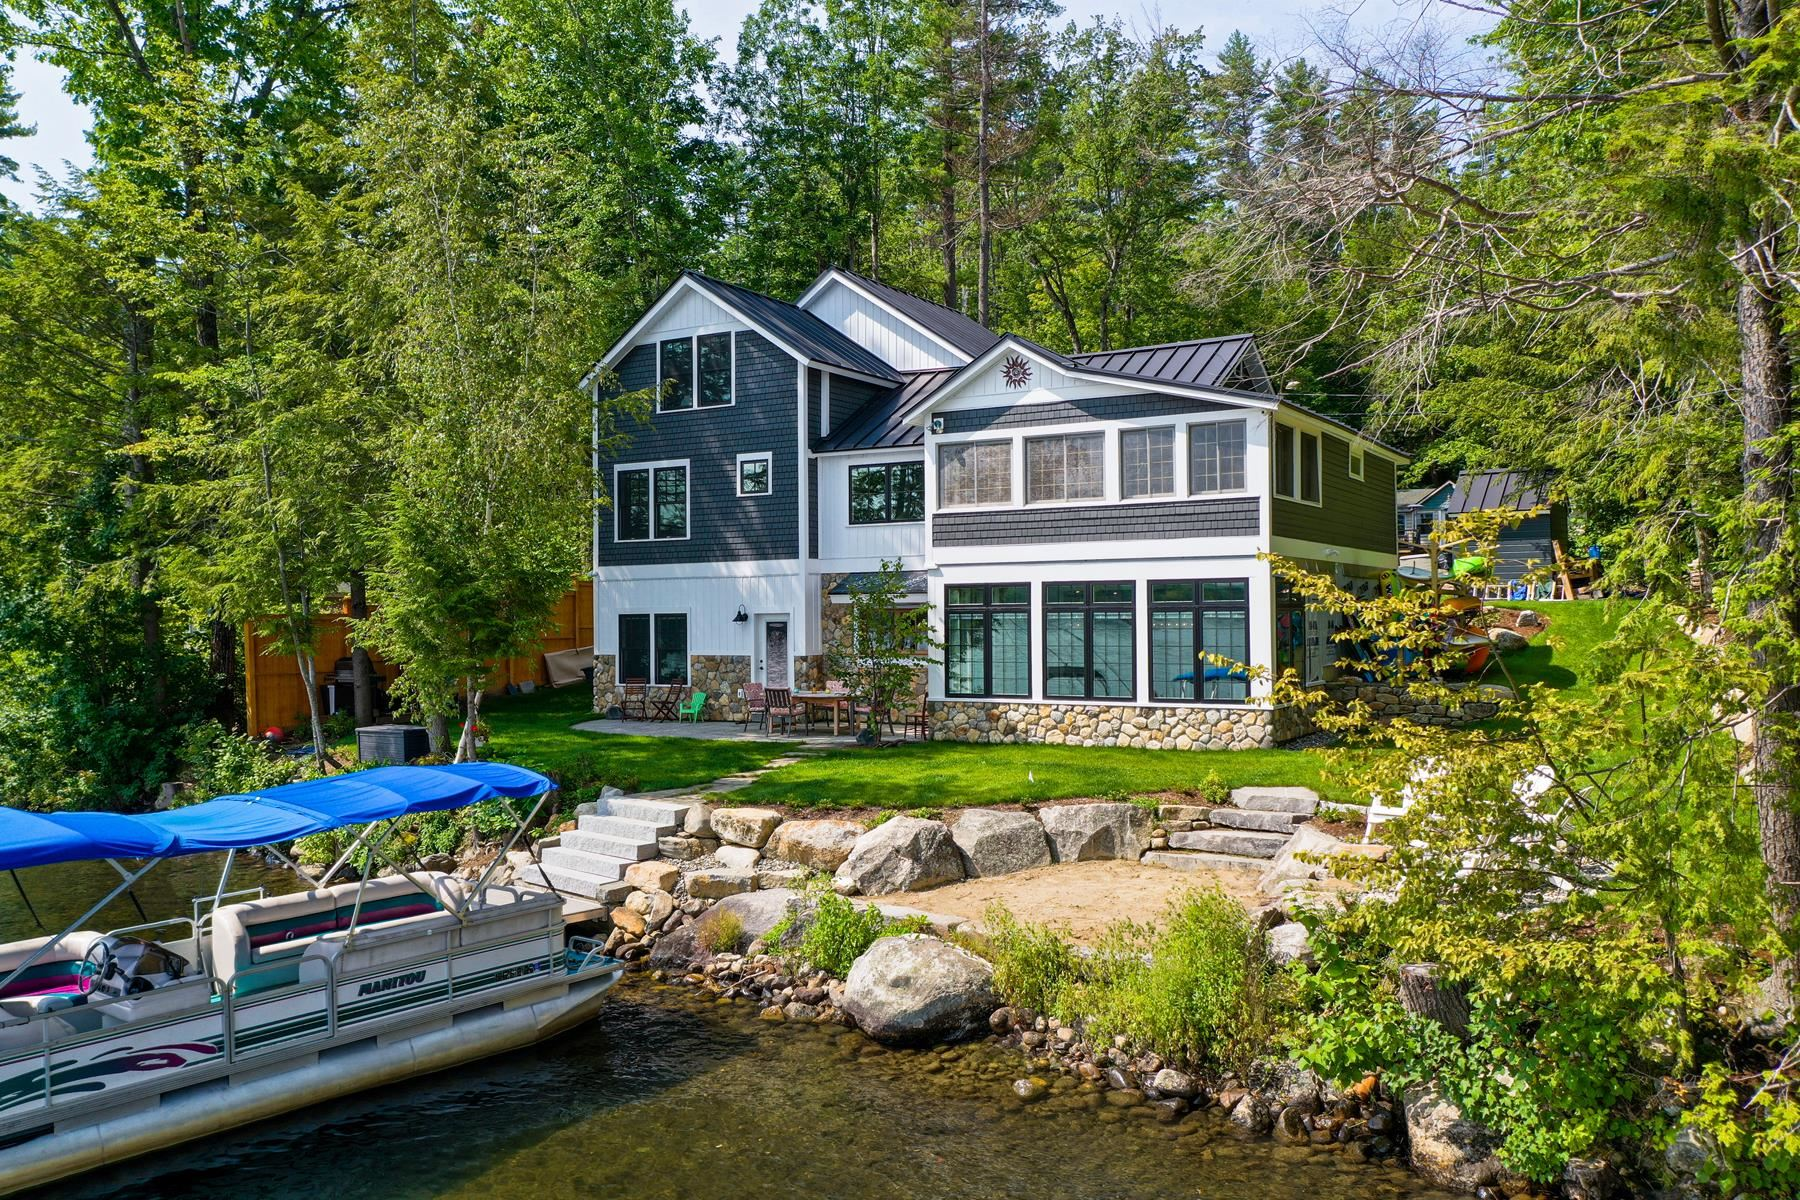 Photo of 39 Breck Shore Road Belmont NH 03220